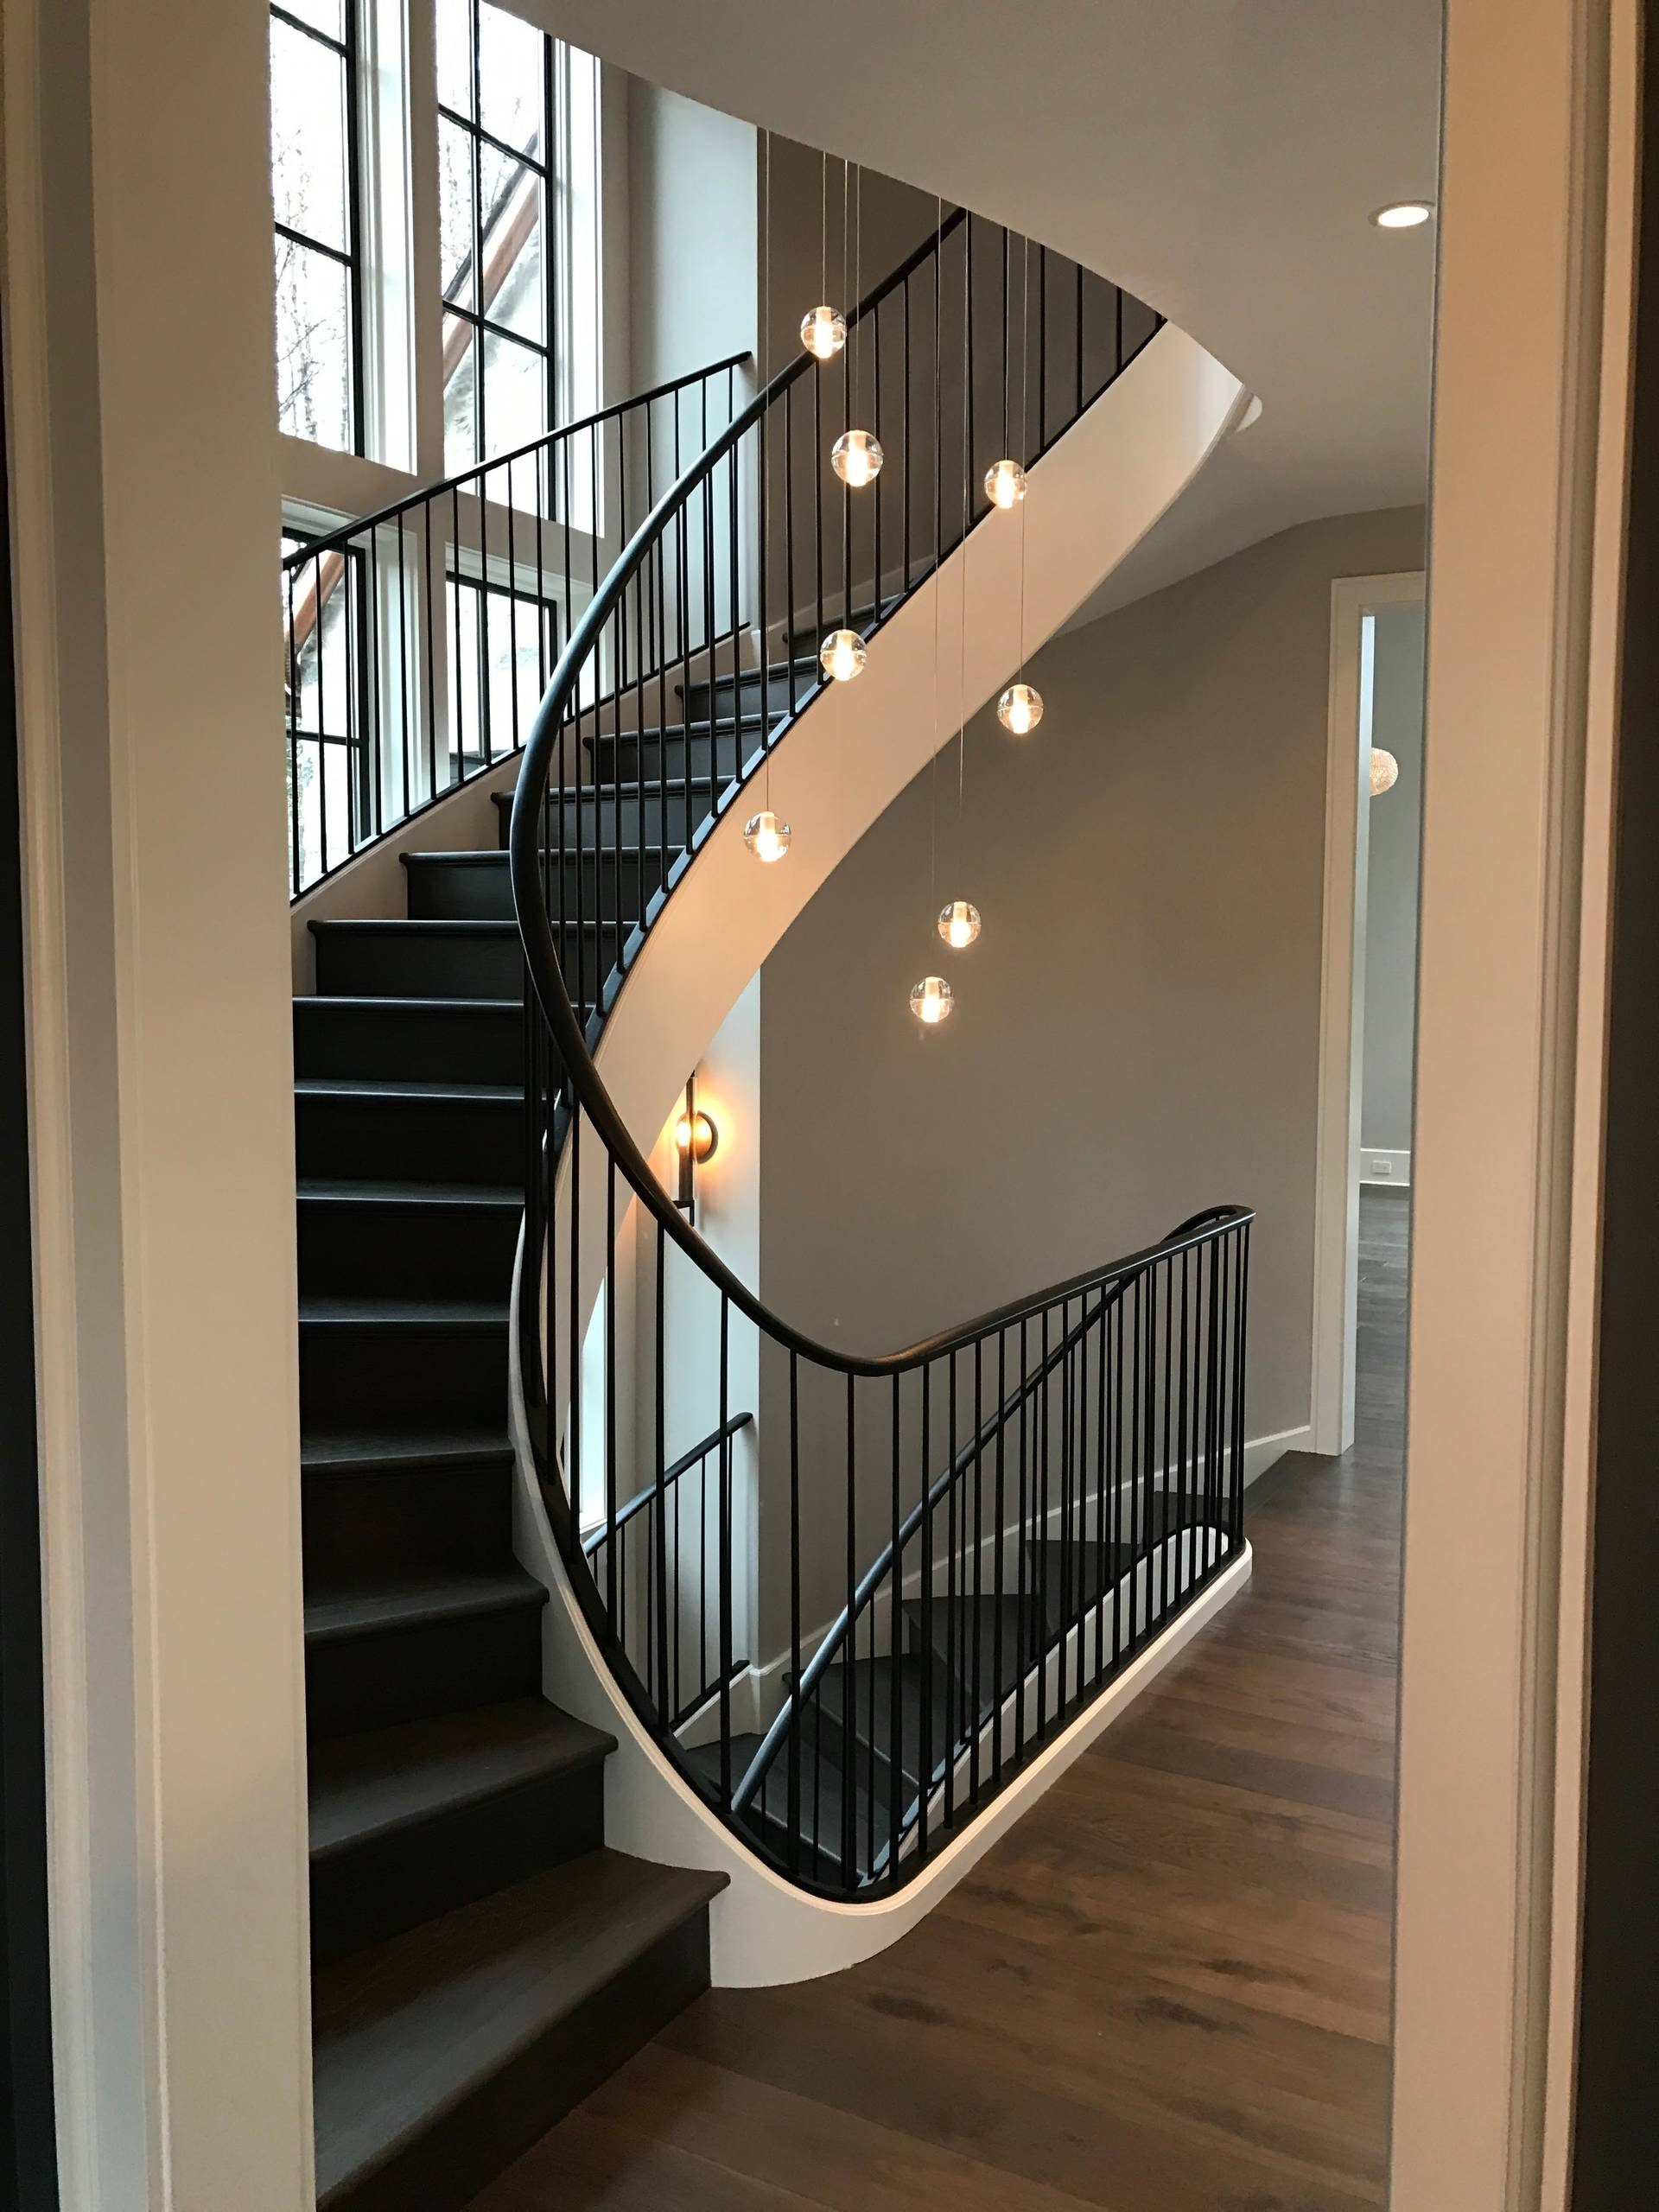 Picture of: 75 Beautiful Painted Spiral Staircase Pictures Ideas November 2020 Houzz